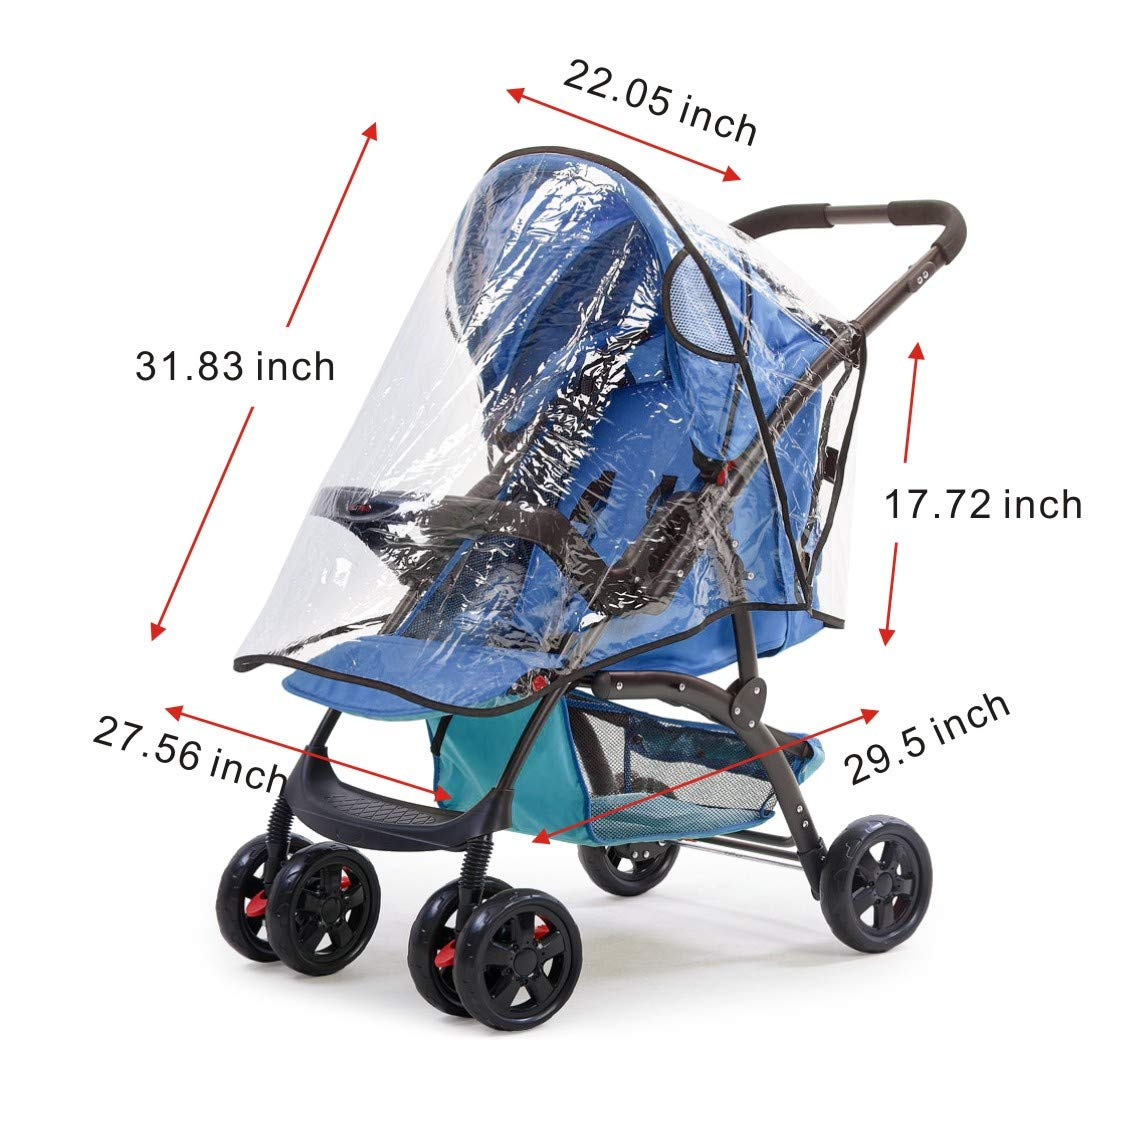 Universal Baby Stroller Rain Cover + Mosquito Net,Idefair Weather Shield Accessories,Protect from Rain Wind Snow Dust Insects Water Proof Ventilate Clear-Breathable Bug Shield for Baby Stroller by Idefair (Image #5)